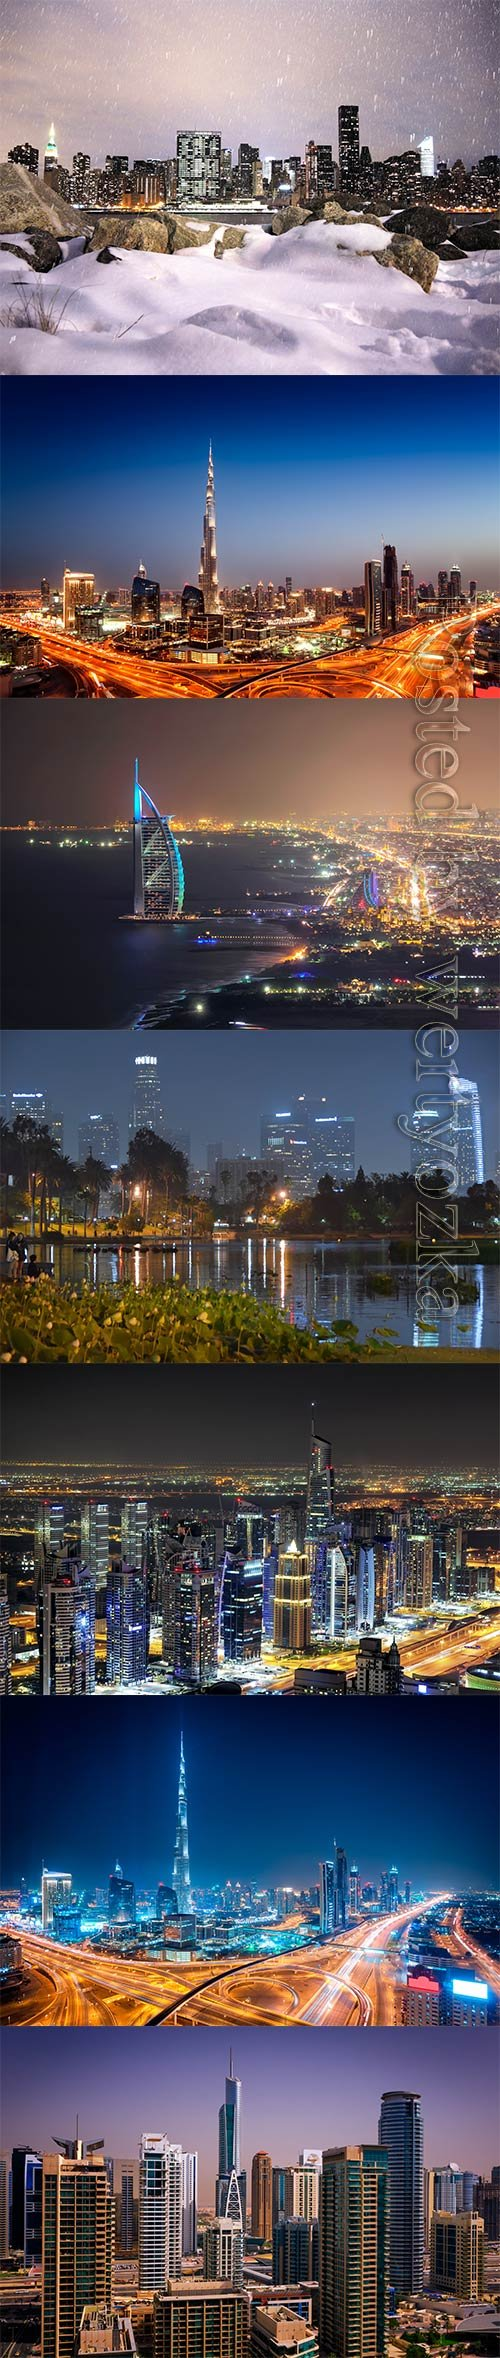 Beautiful backgrounds with night cities